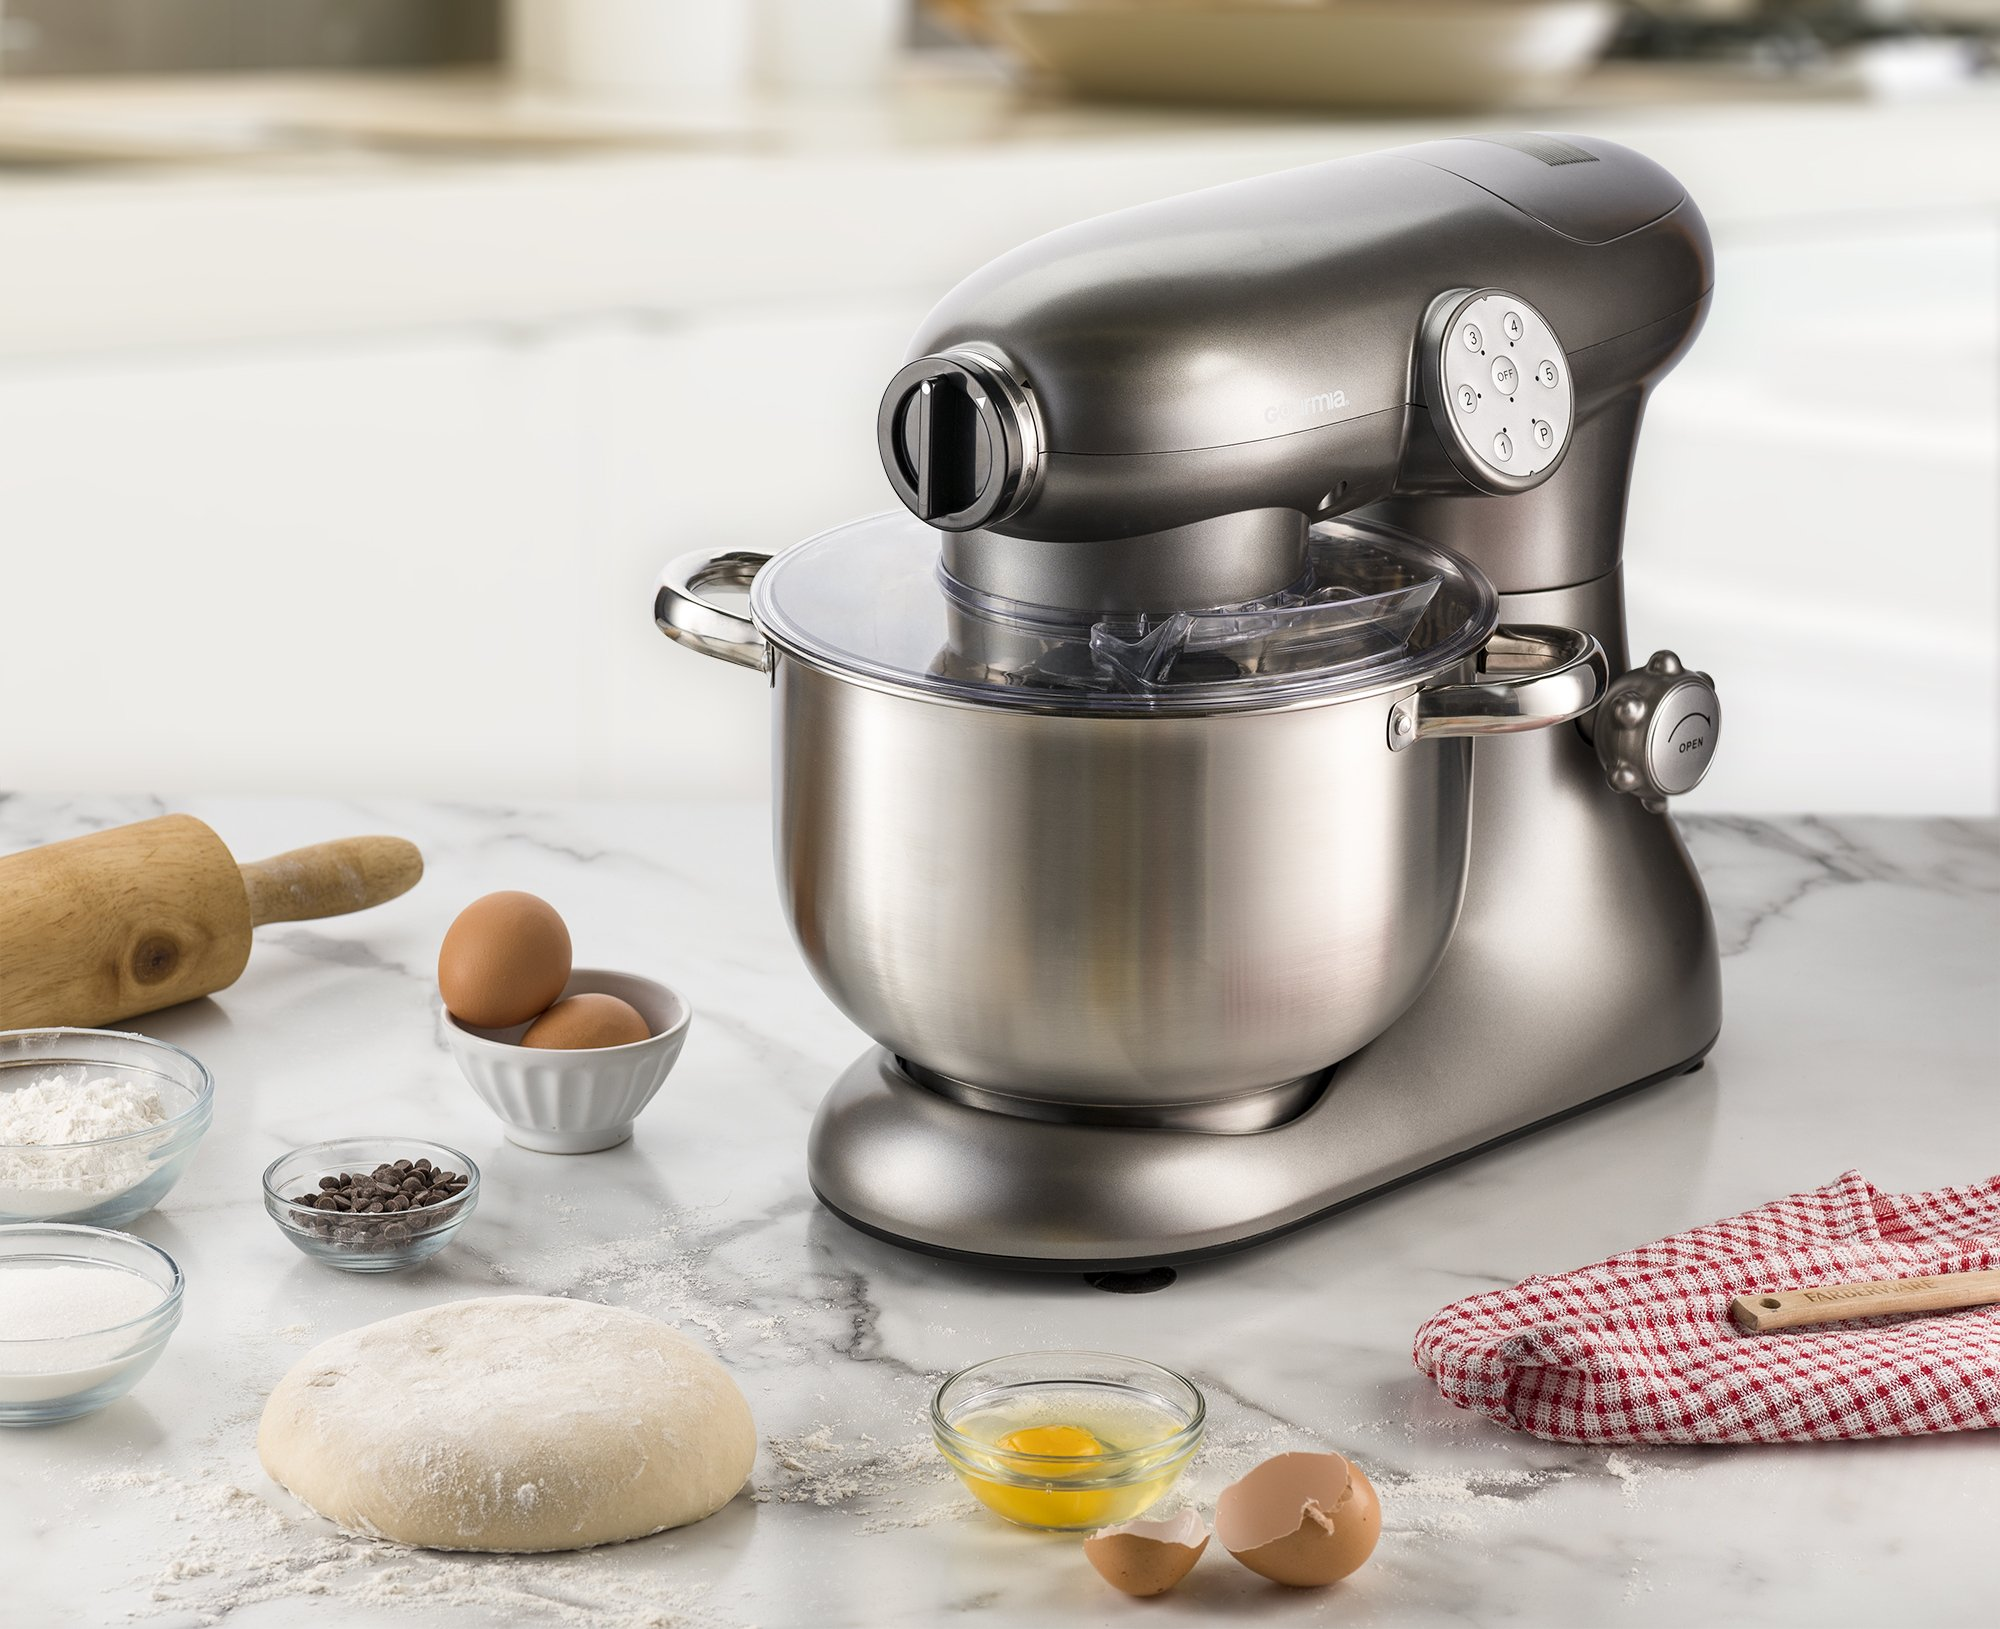 Gourmia EP700 7-Quart 6 Speed Stand Mixer, Planetery Action with Stainless Steel Bowl by Gourmia (Image #5)